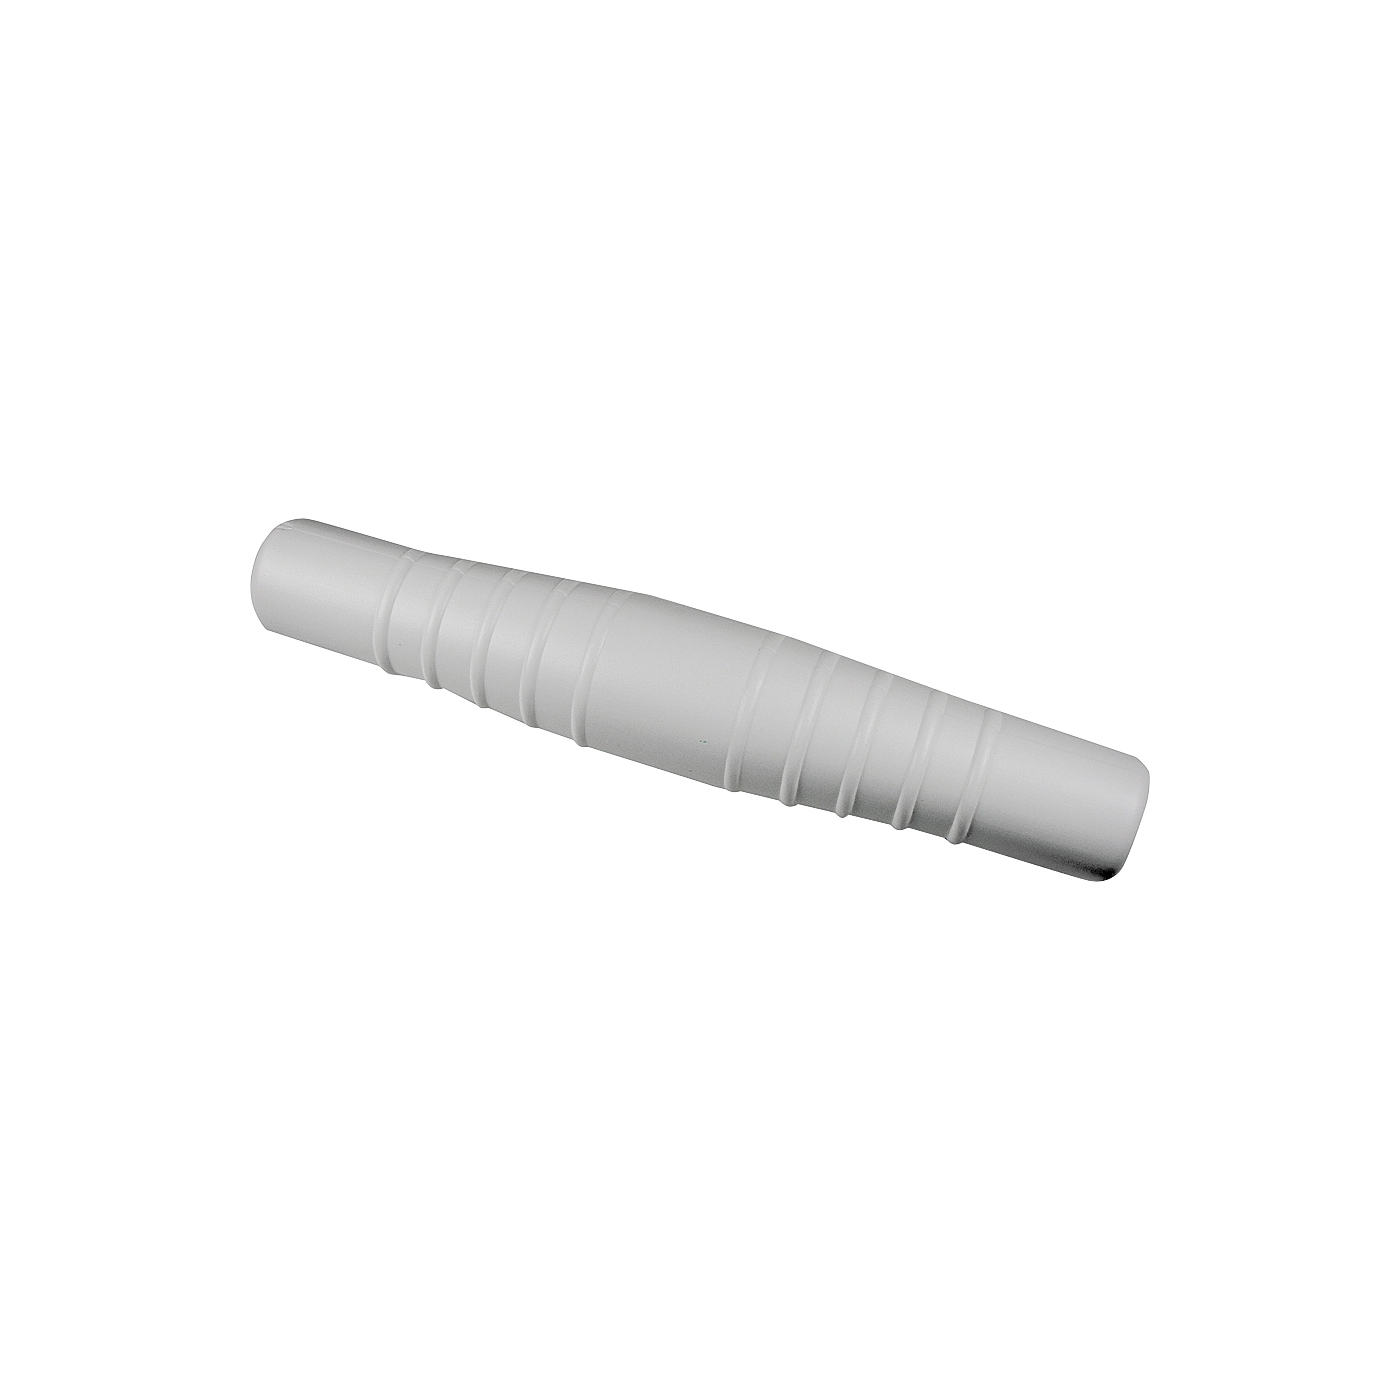 Picture of JED POOL TOOLS 80-220 Hose Connector, 9 in L